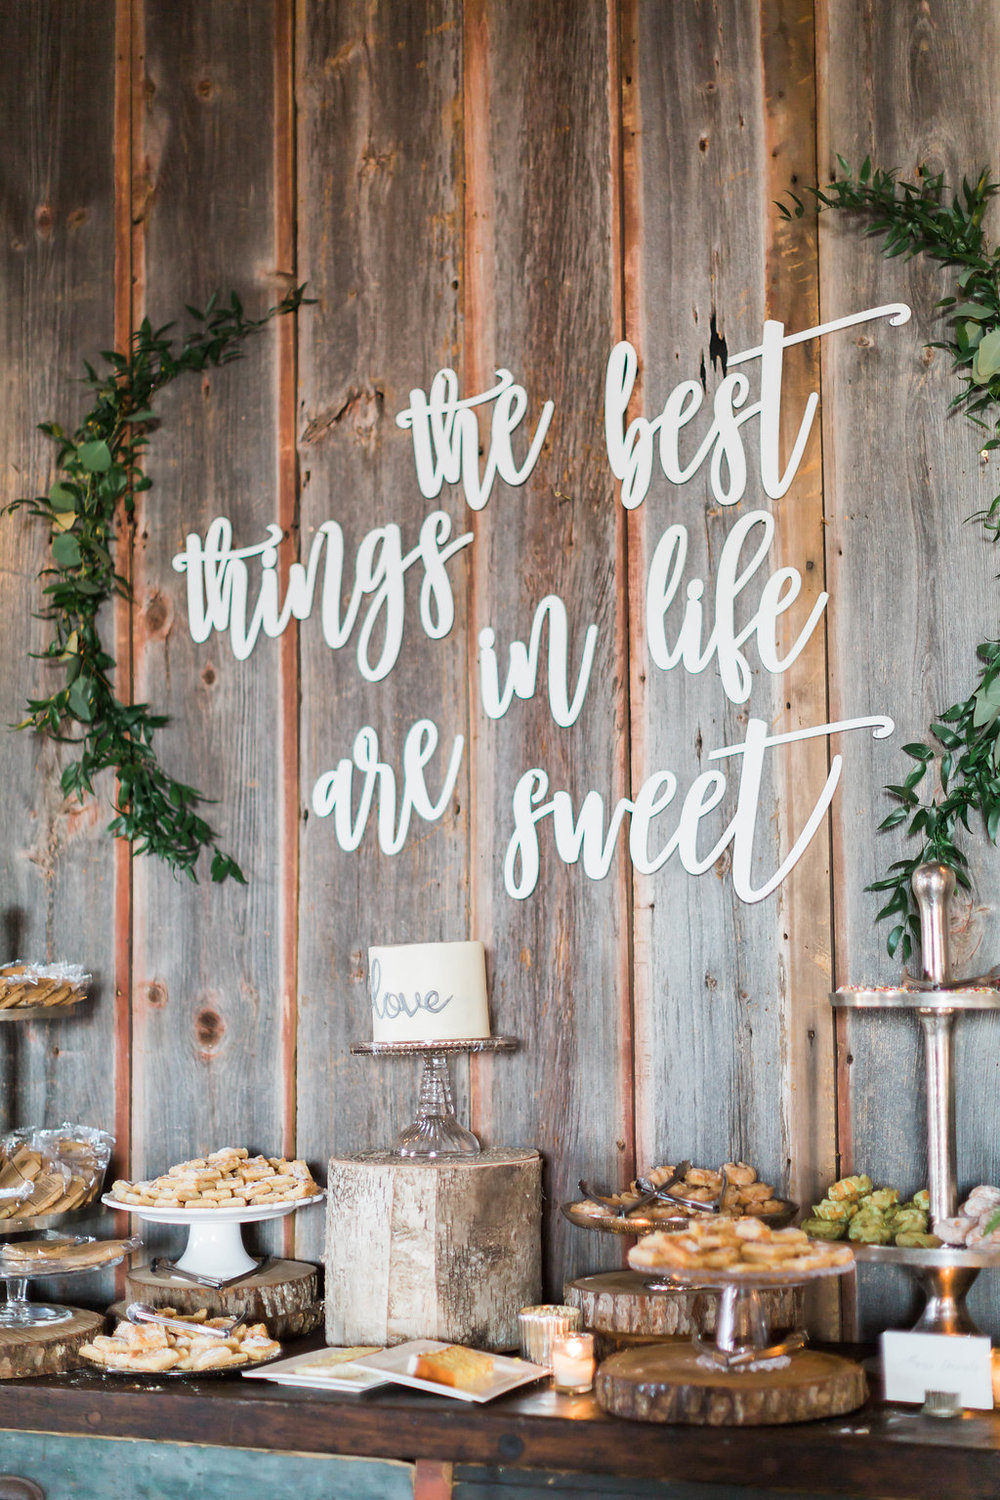 Heirloom Event Co. | Emerson Creek Pottery & Tearoom